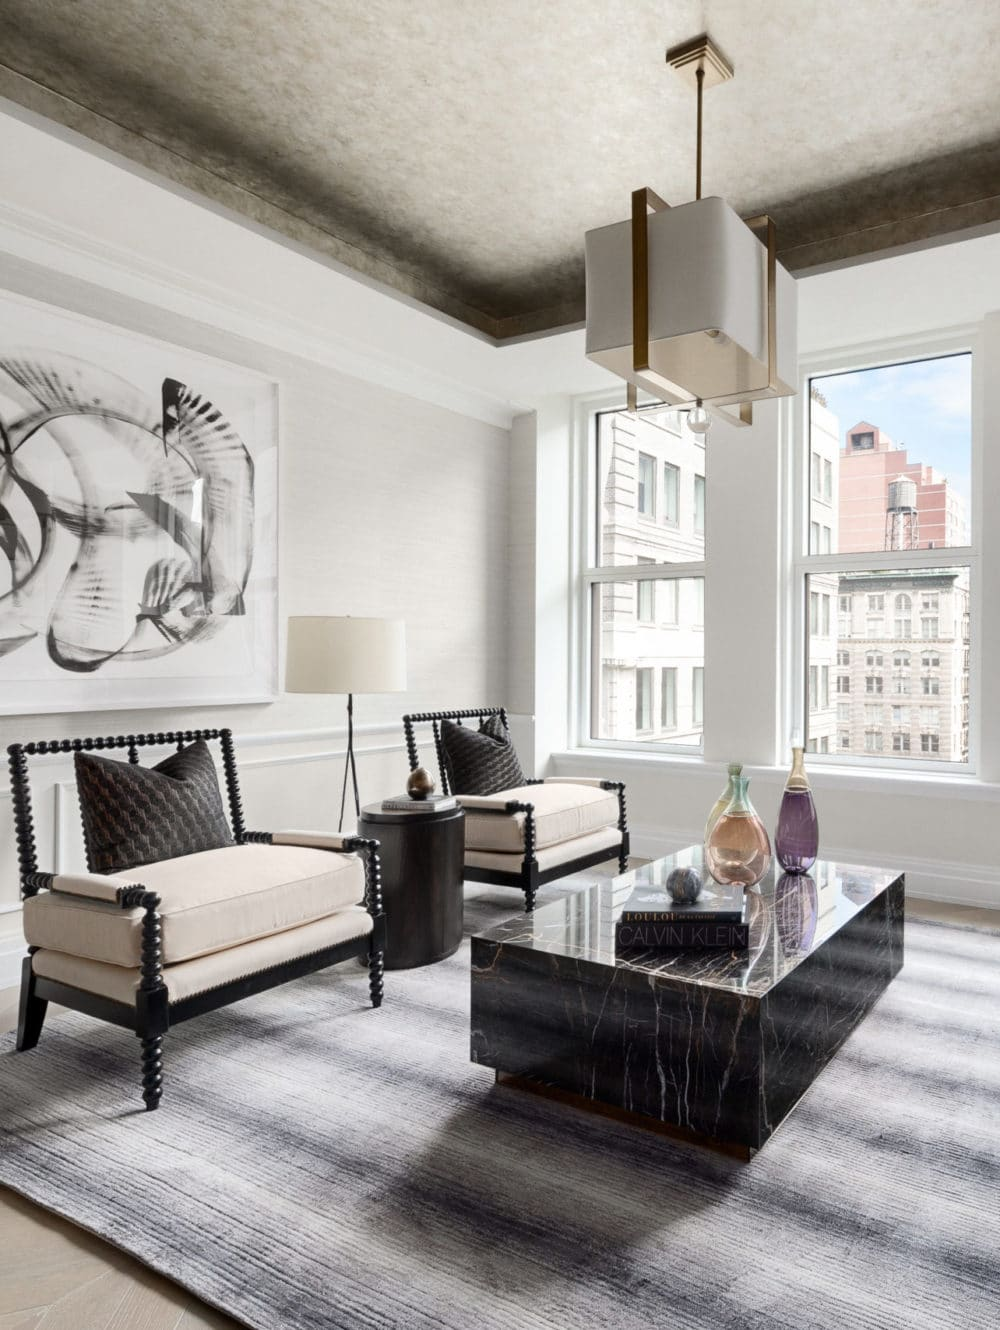 Interior view of a living room with classic white walls and black furniture in 108 Leonard condominiums in New York City.